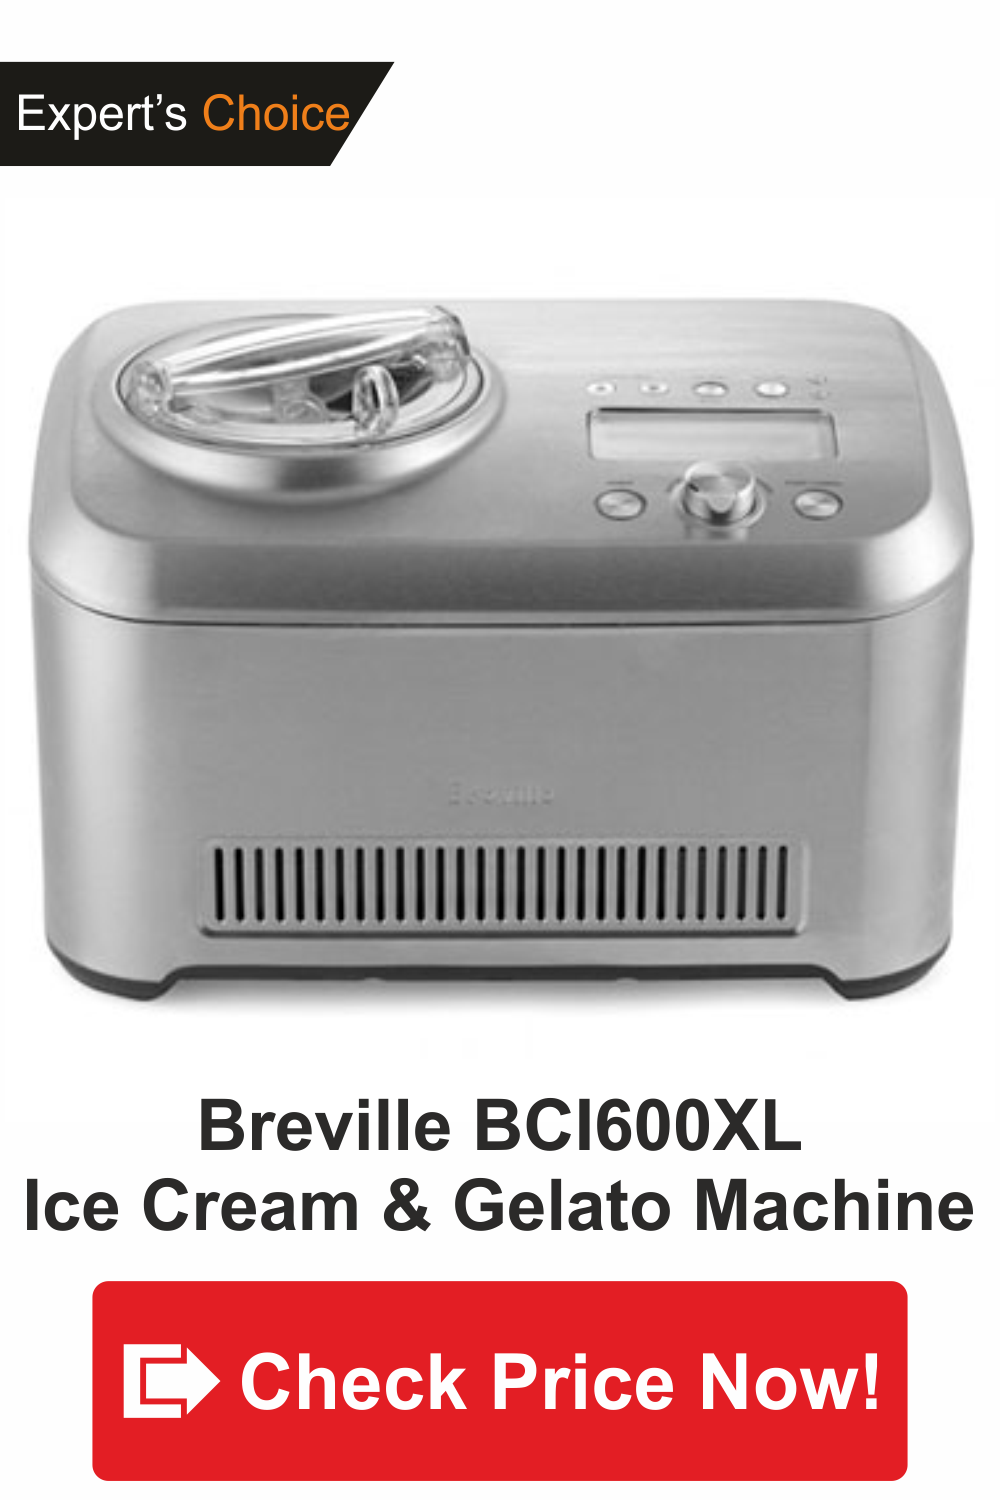 best Ice Cream & Gelato maker-Breville BCI600XL